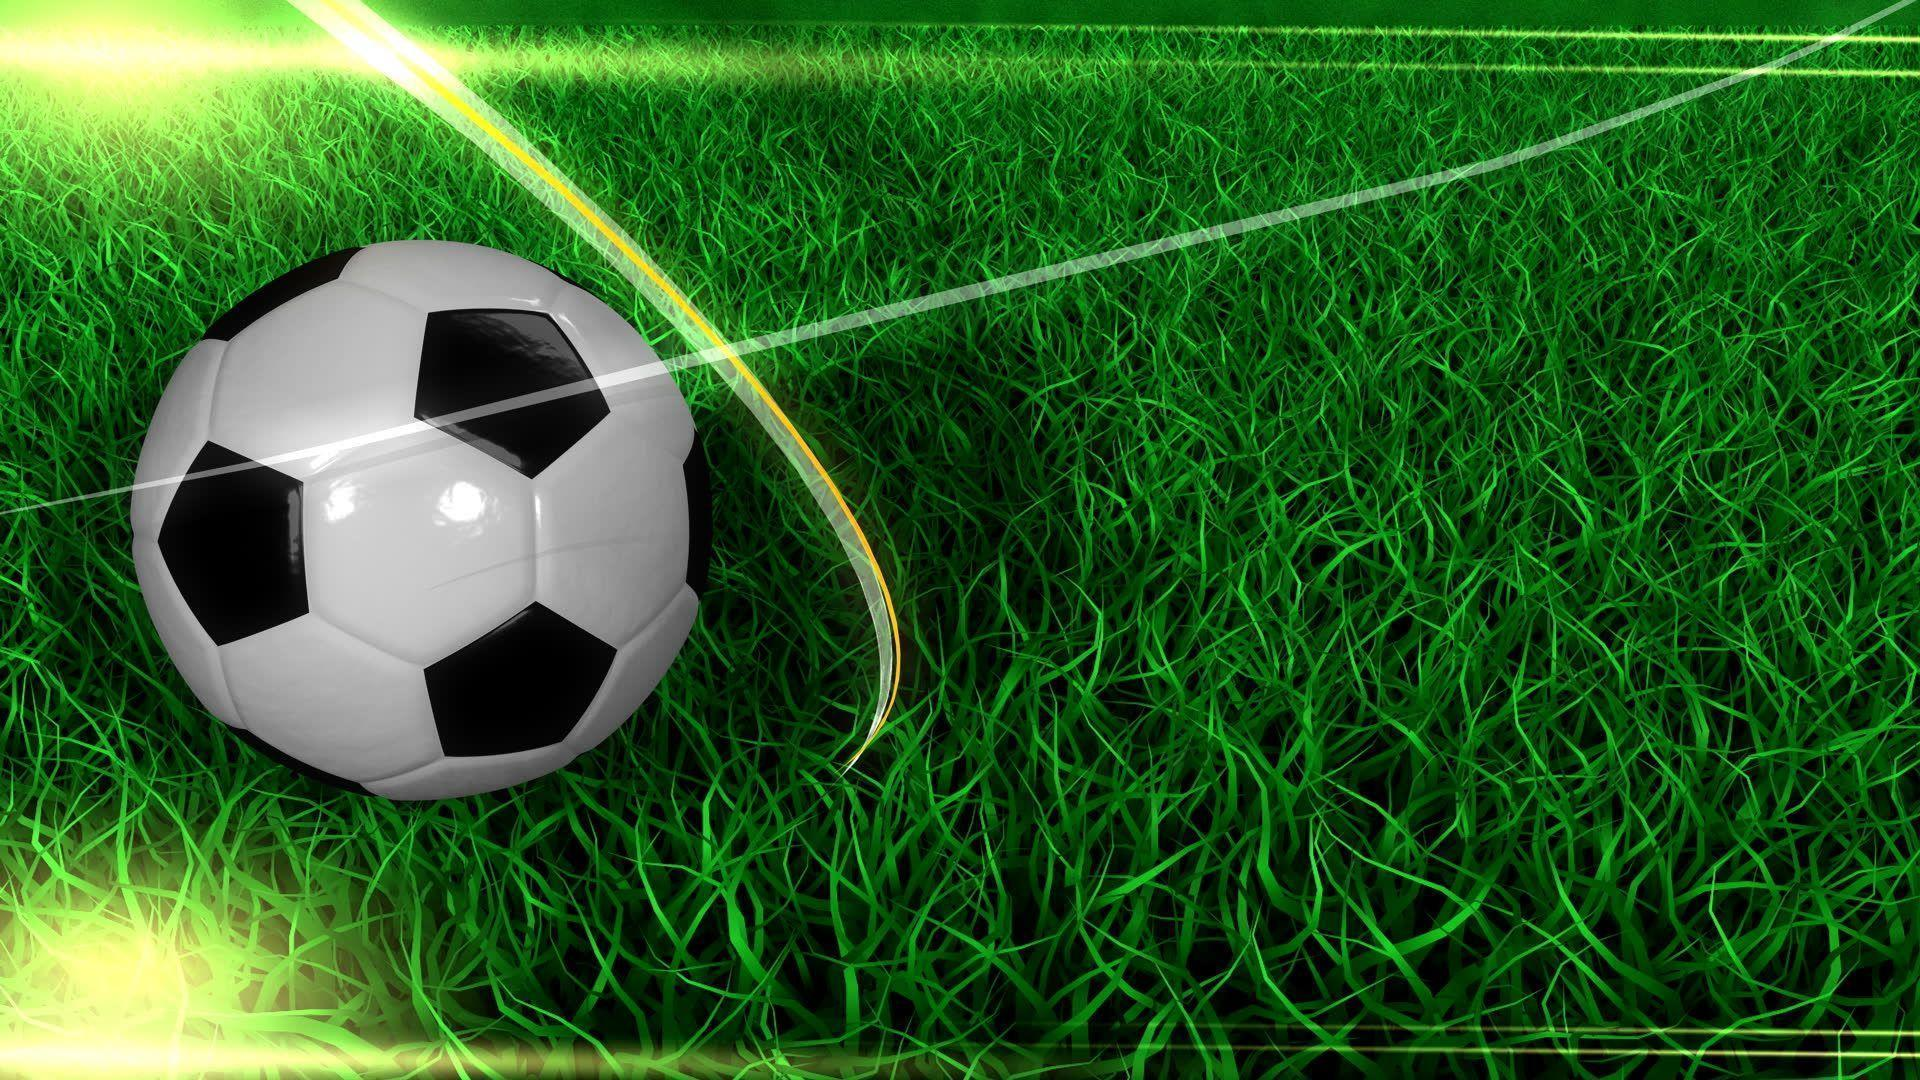 Soccer Backgrounds Image 1920x1080